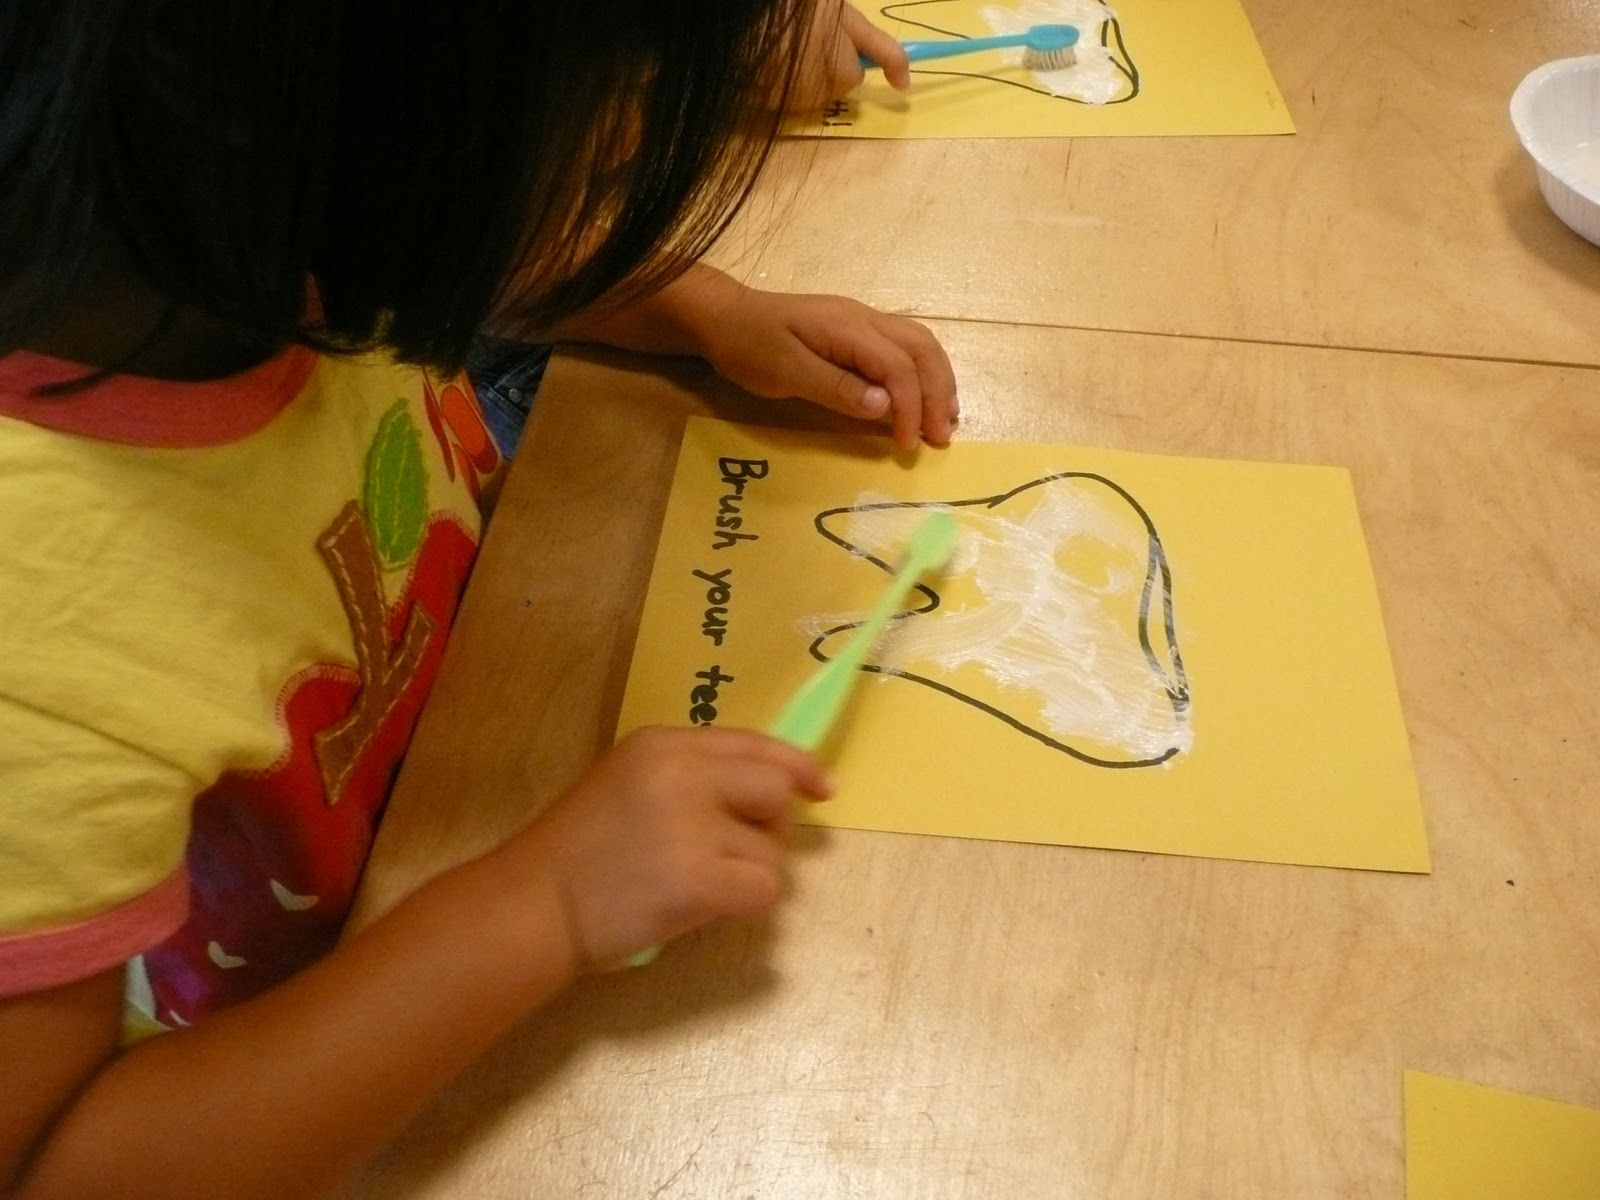 Essay On Community Helpers For Kids